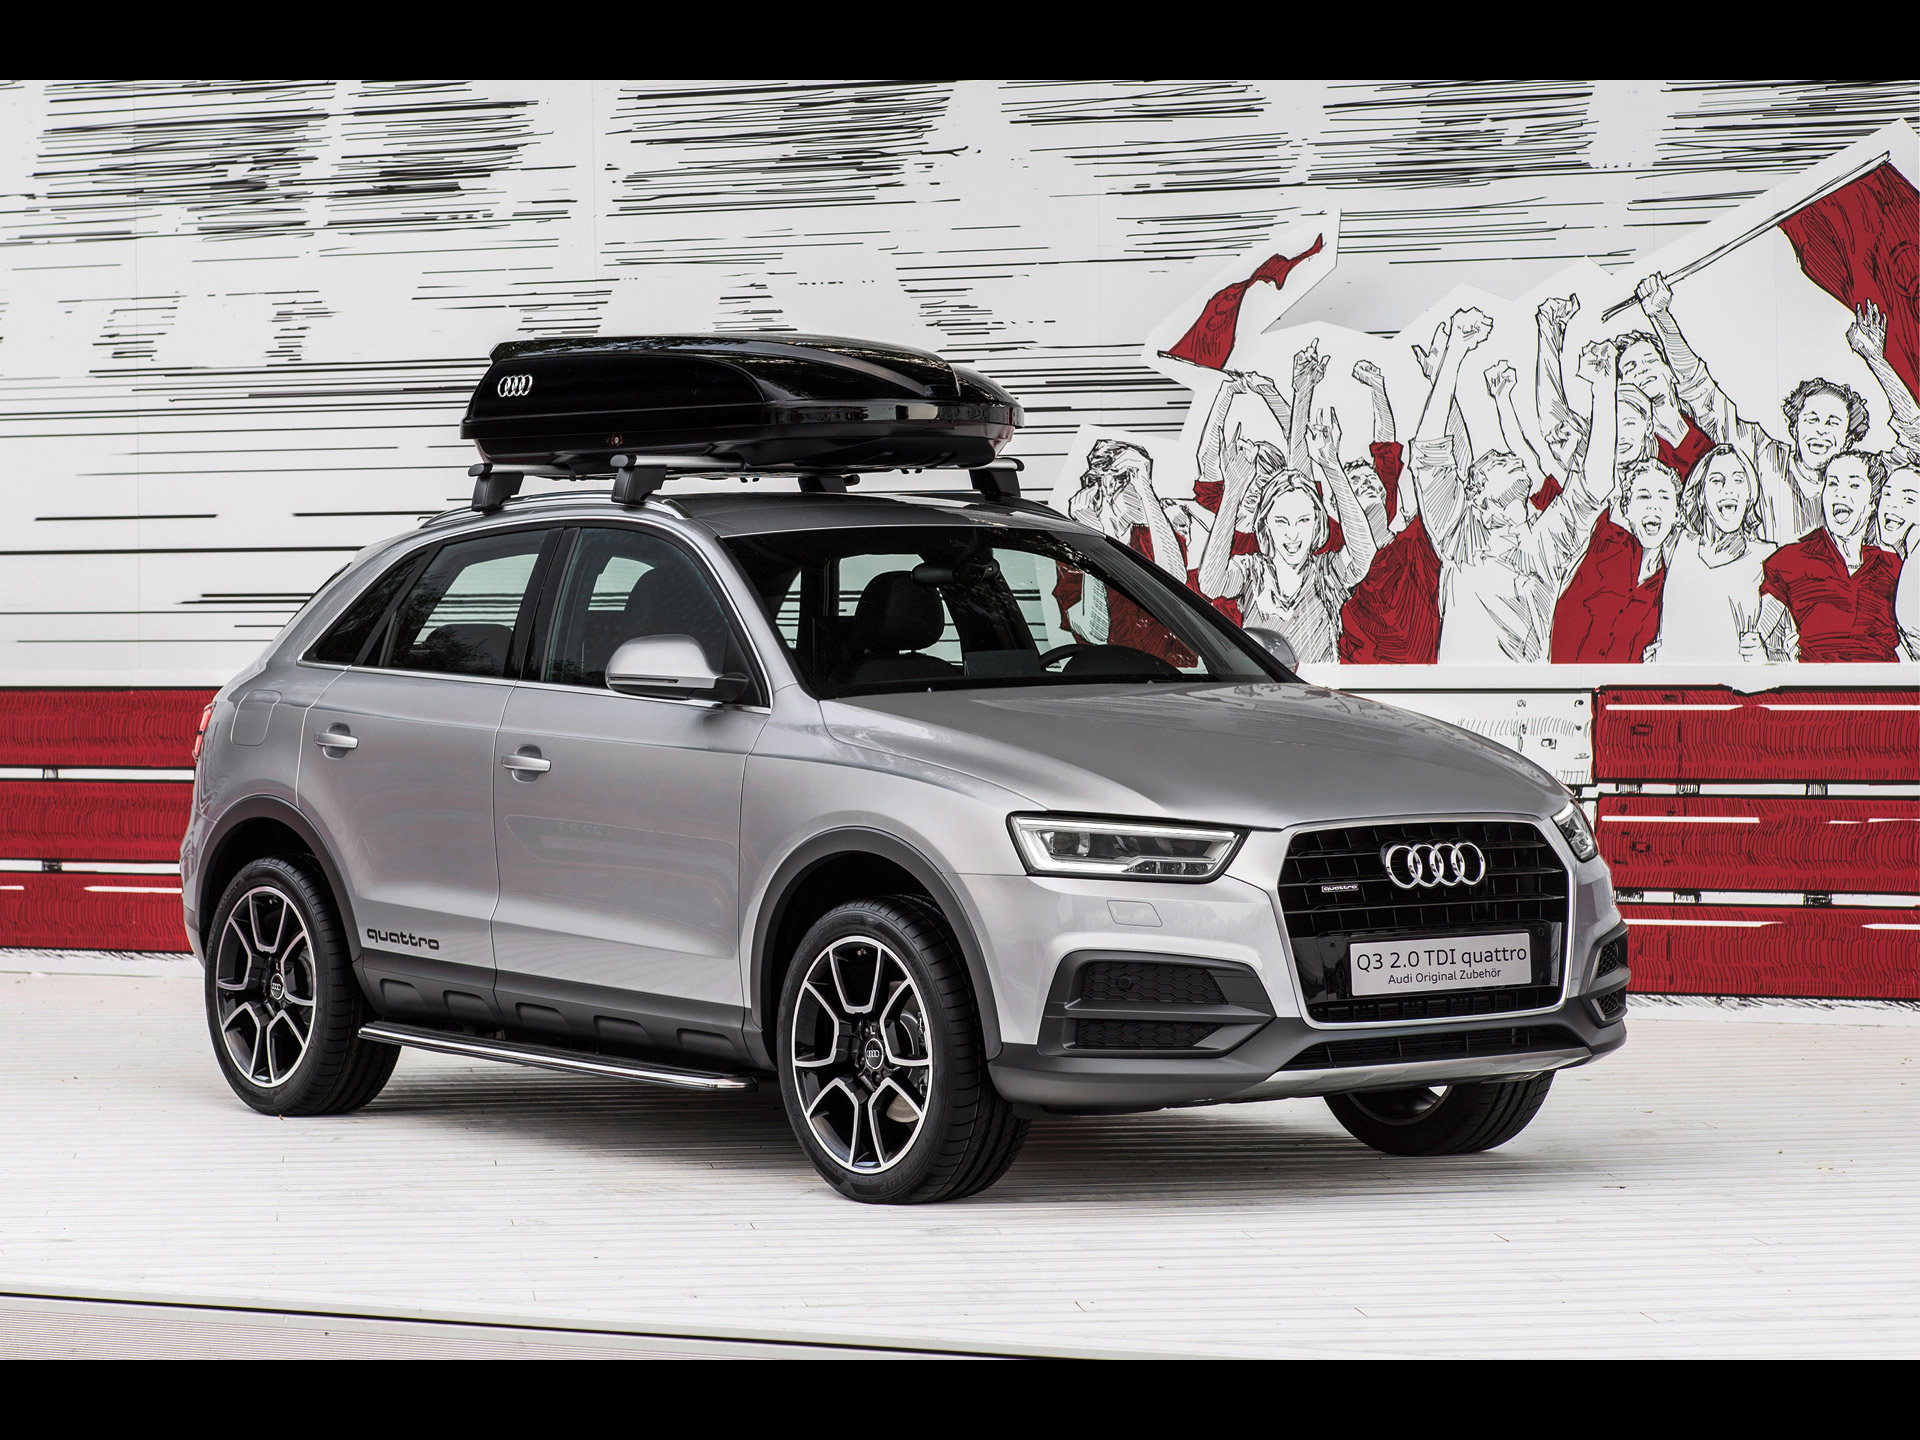 Audi Q3 offroad style package [2015] 001